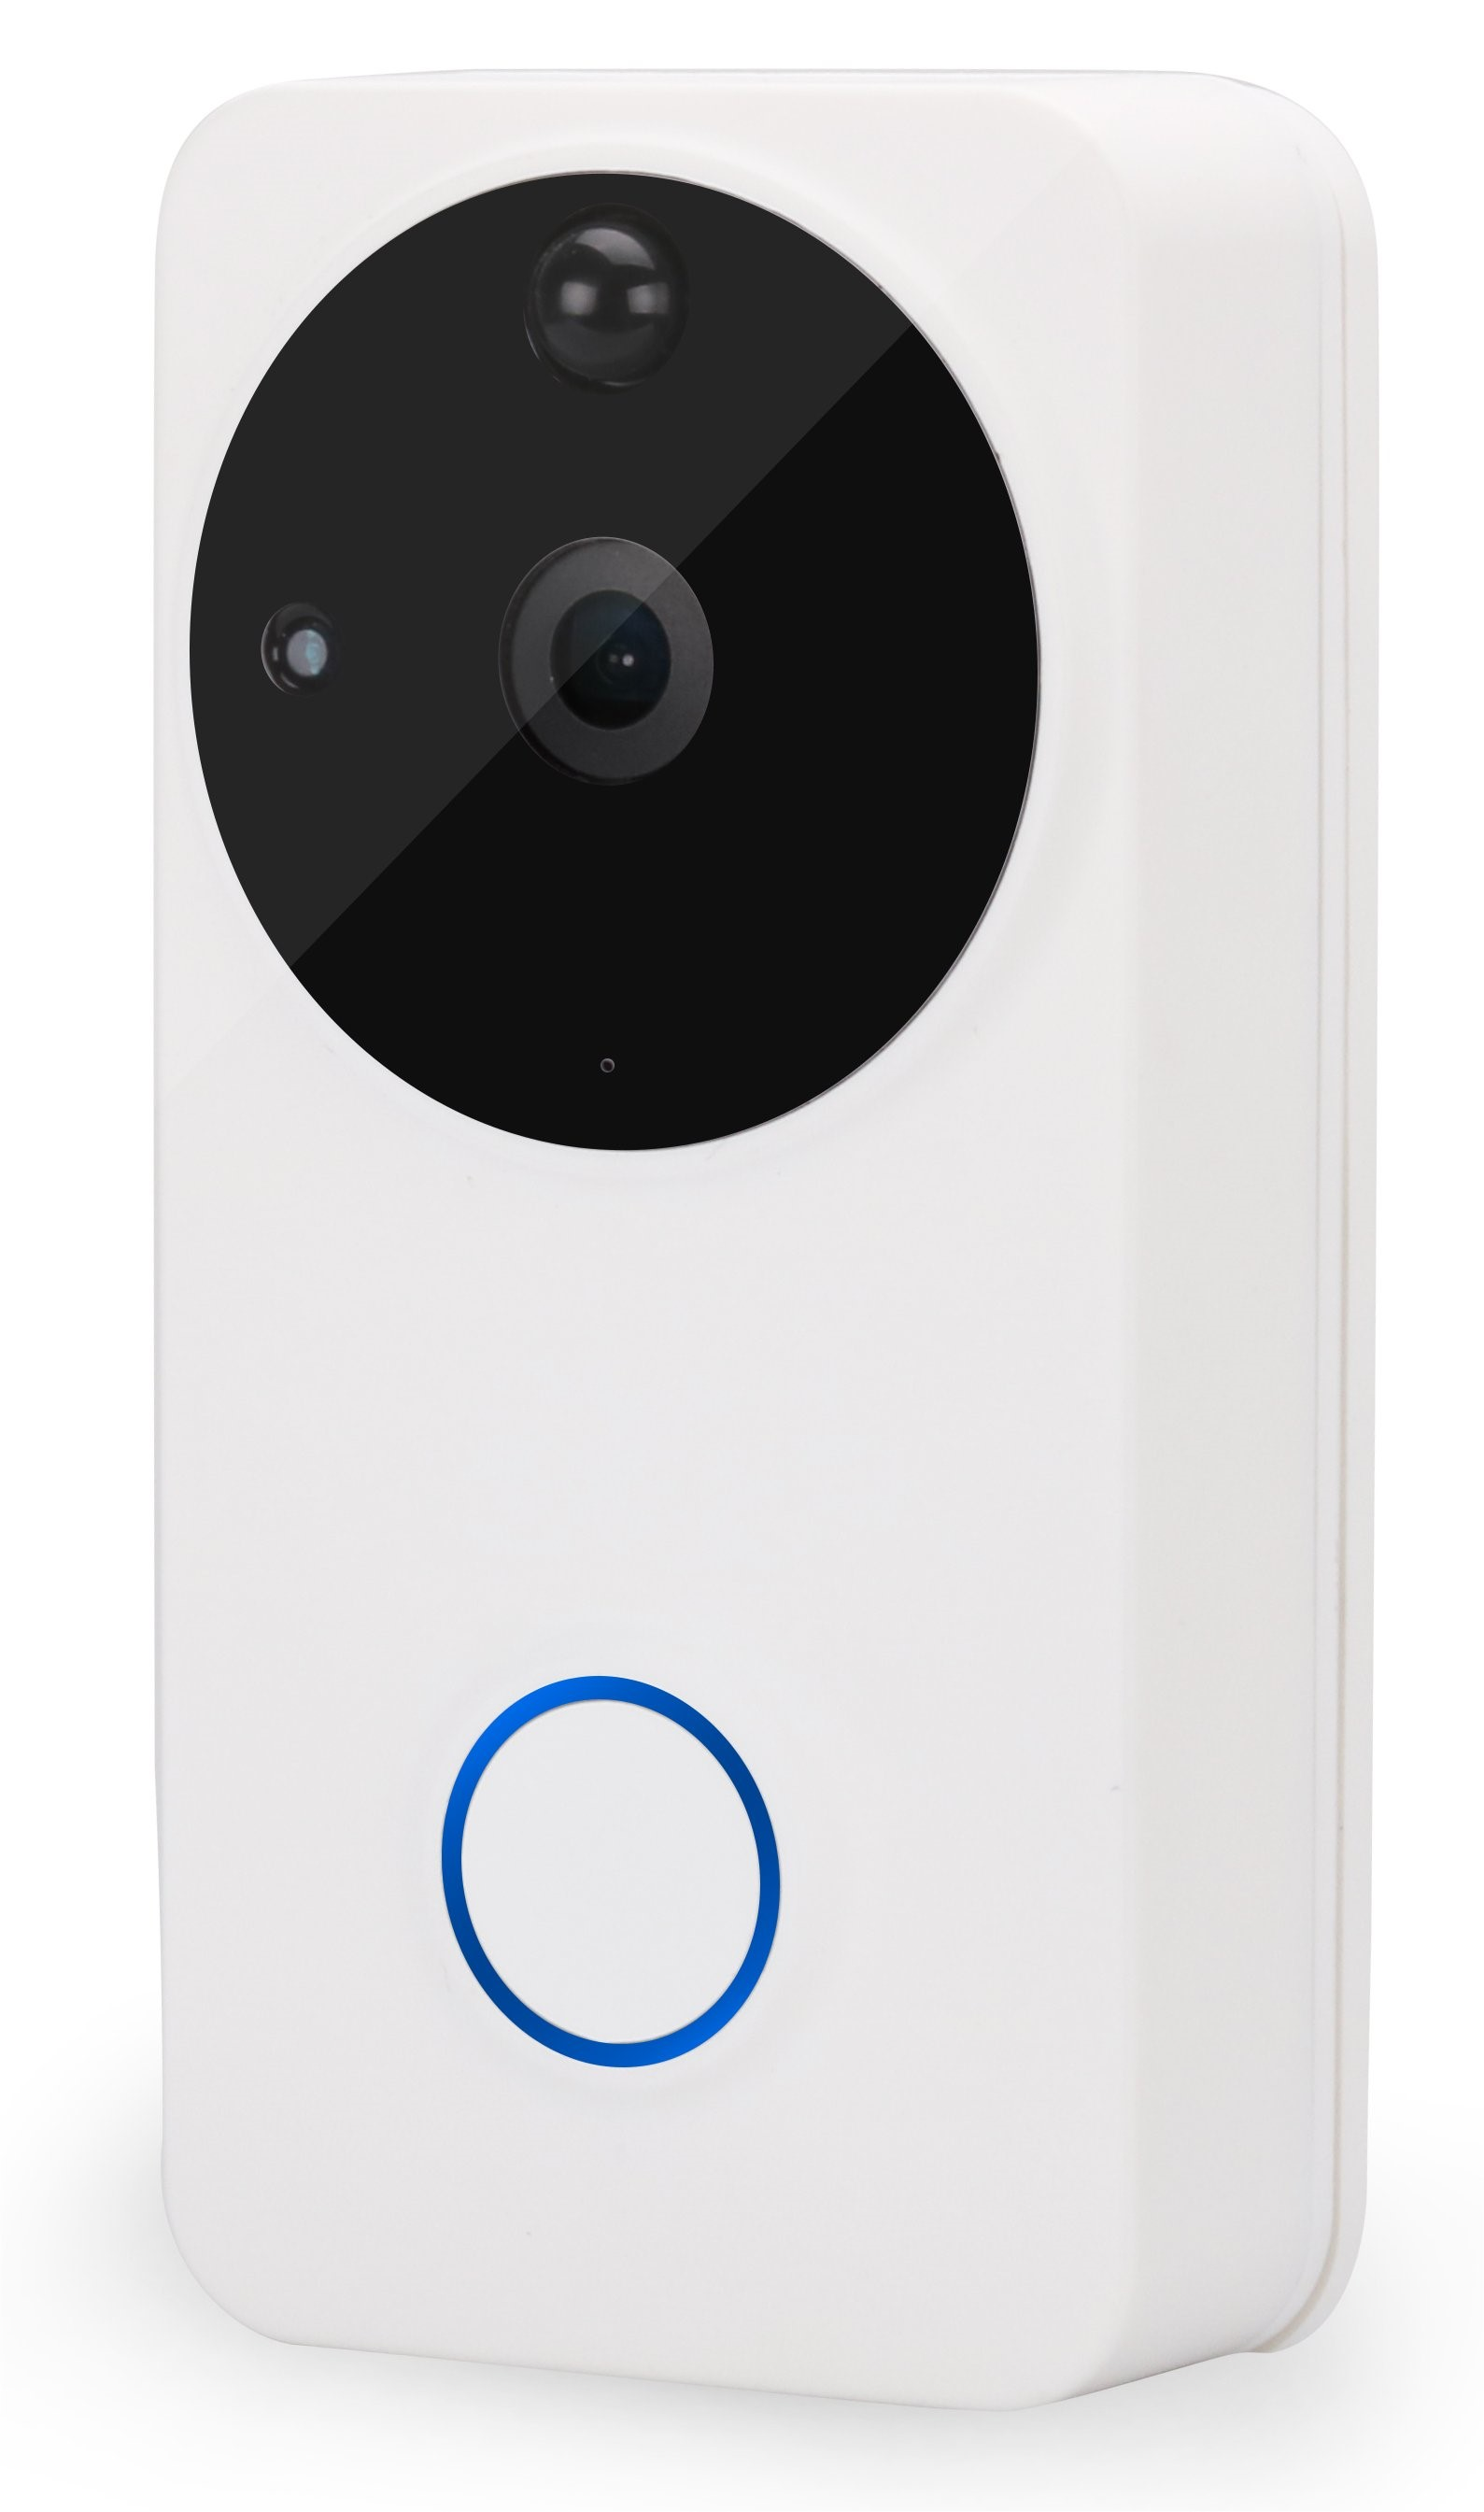 Cymru Security Systems for White Smart Door Bell in Wales